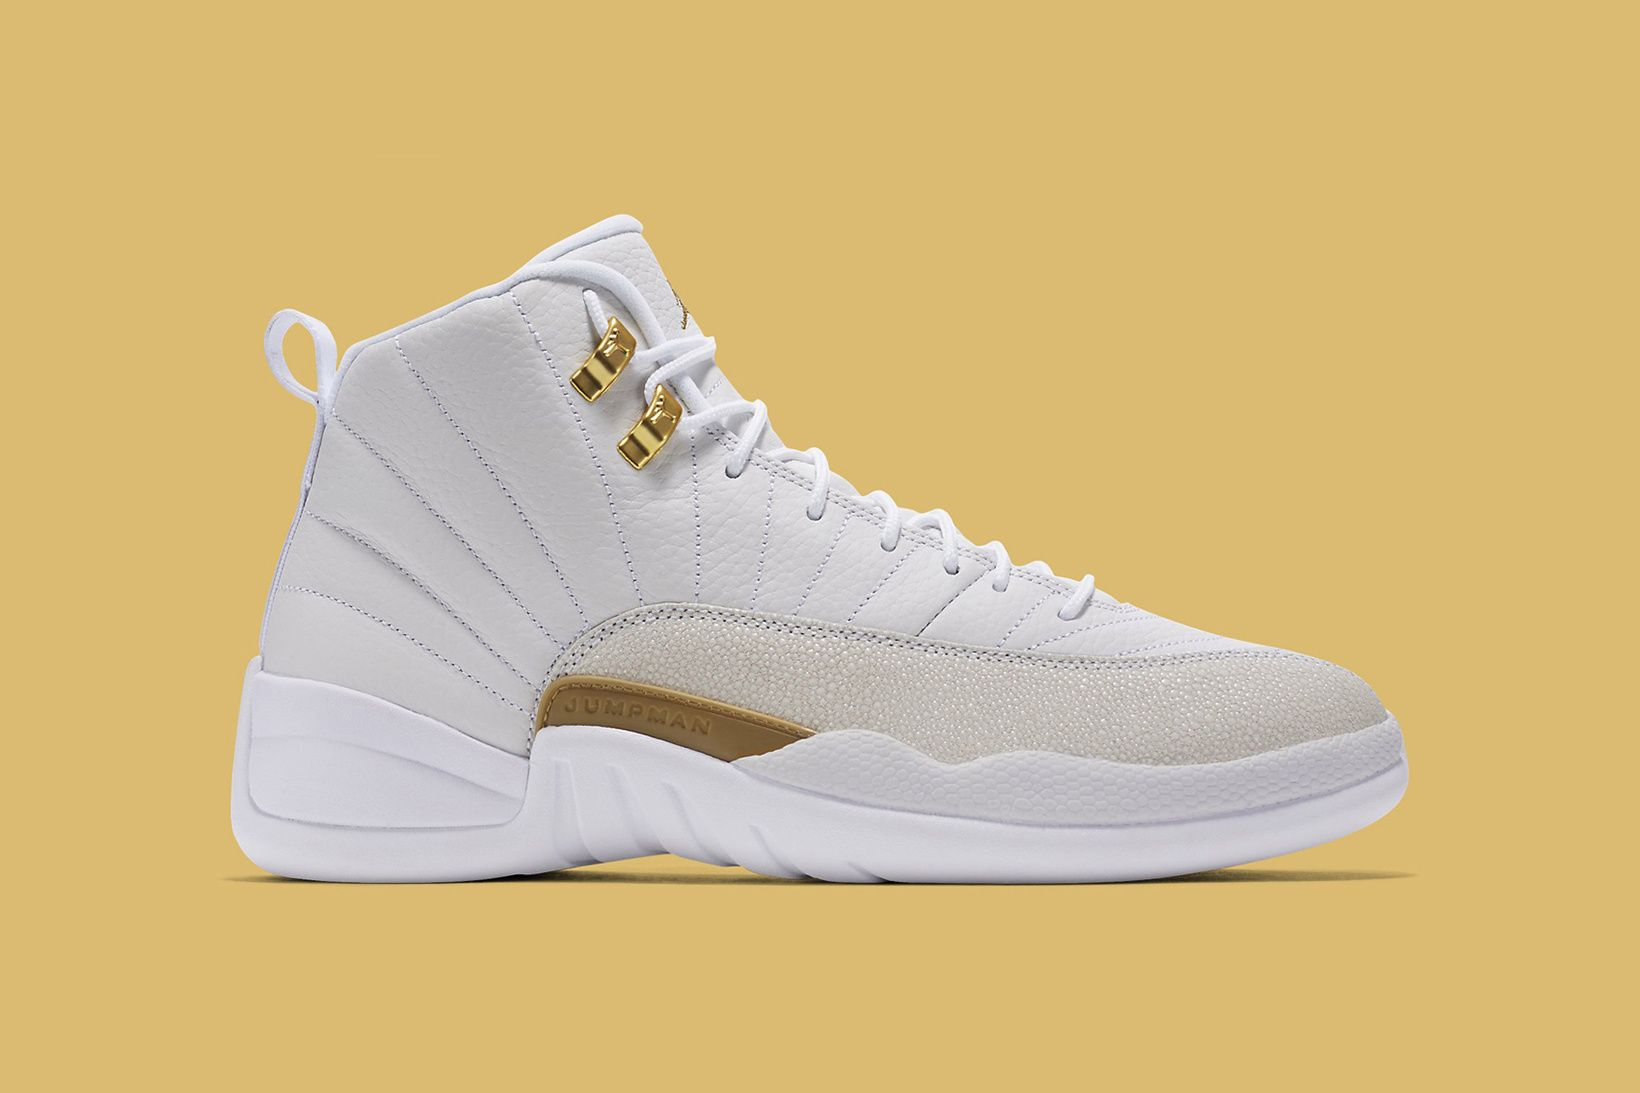 0350157a41ea UPDATE  Nike Officially Unveils the White Colorway of the OVO x Air ...